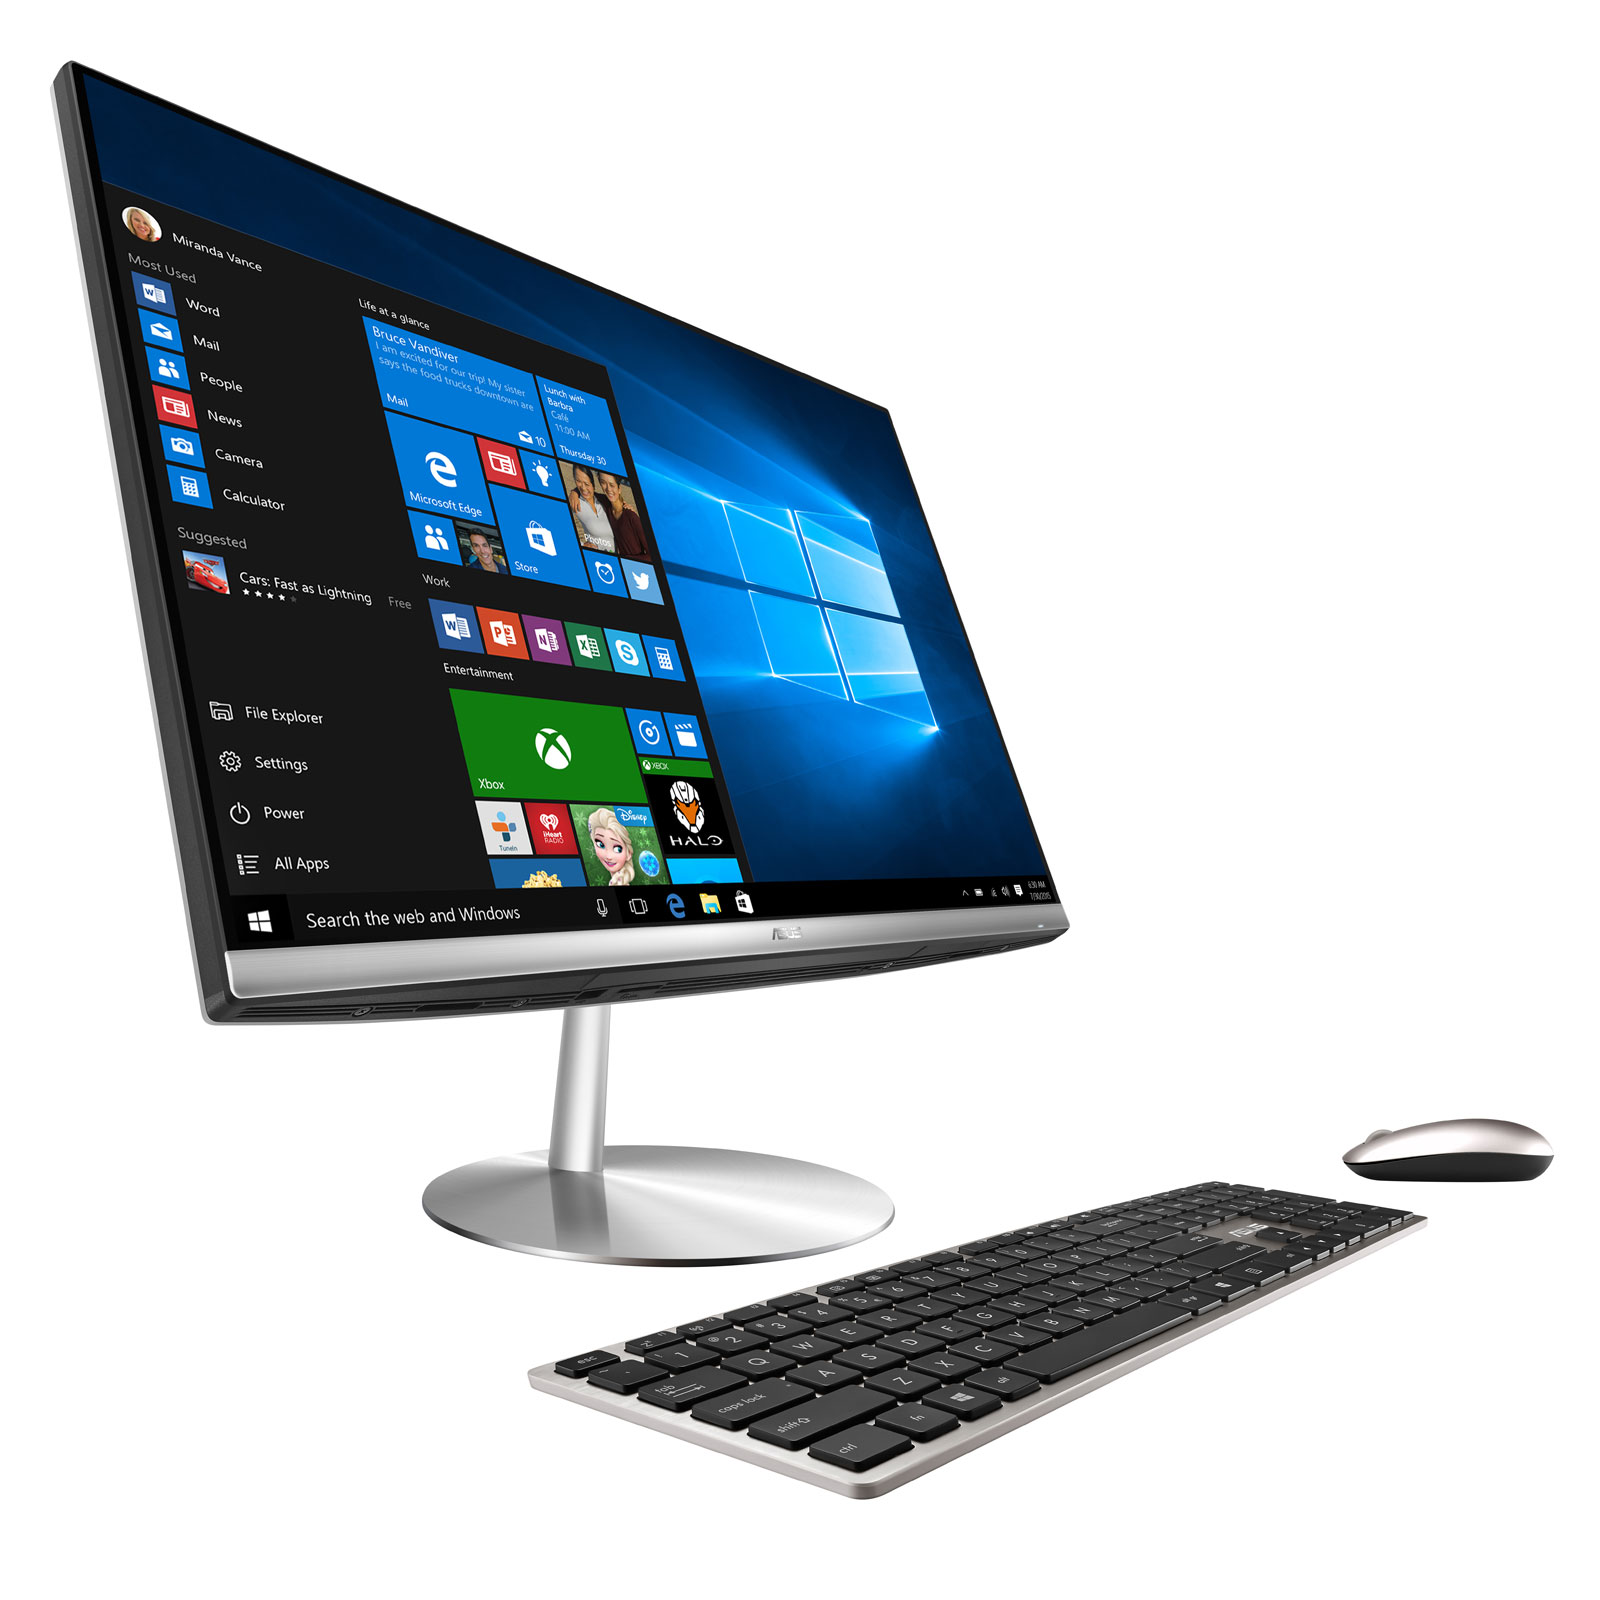 Asus zen aio zn242ifgk ca002r pc de bureau asus sur - Ordinateur de bureau windows 7 pro ...